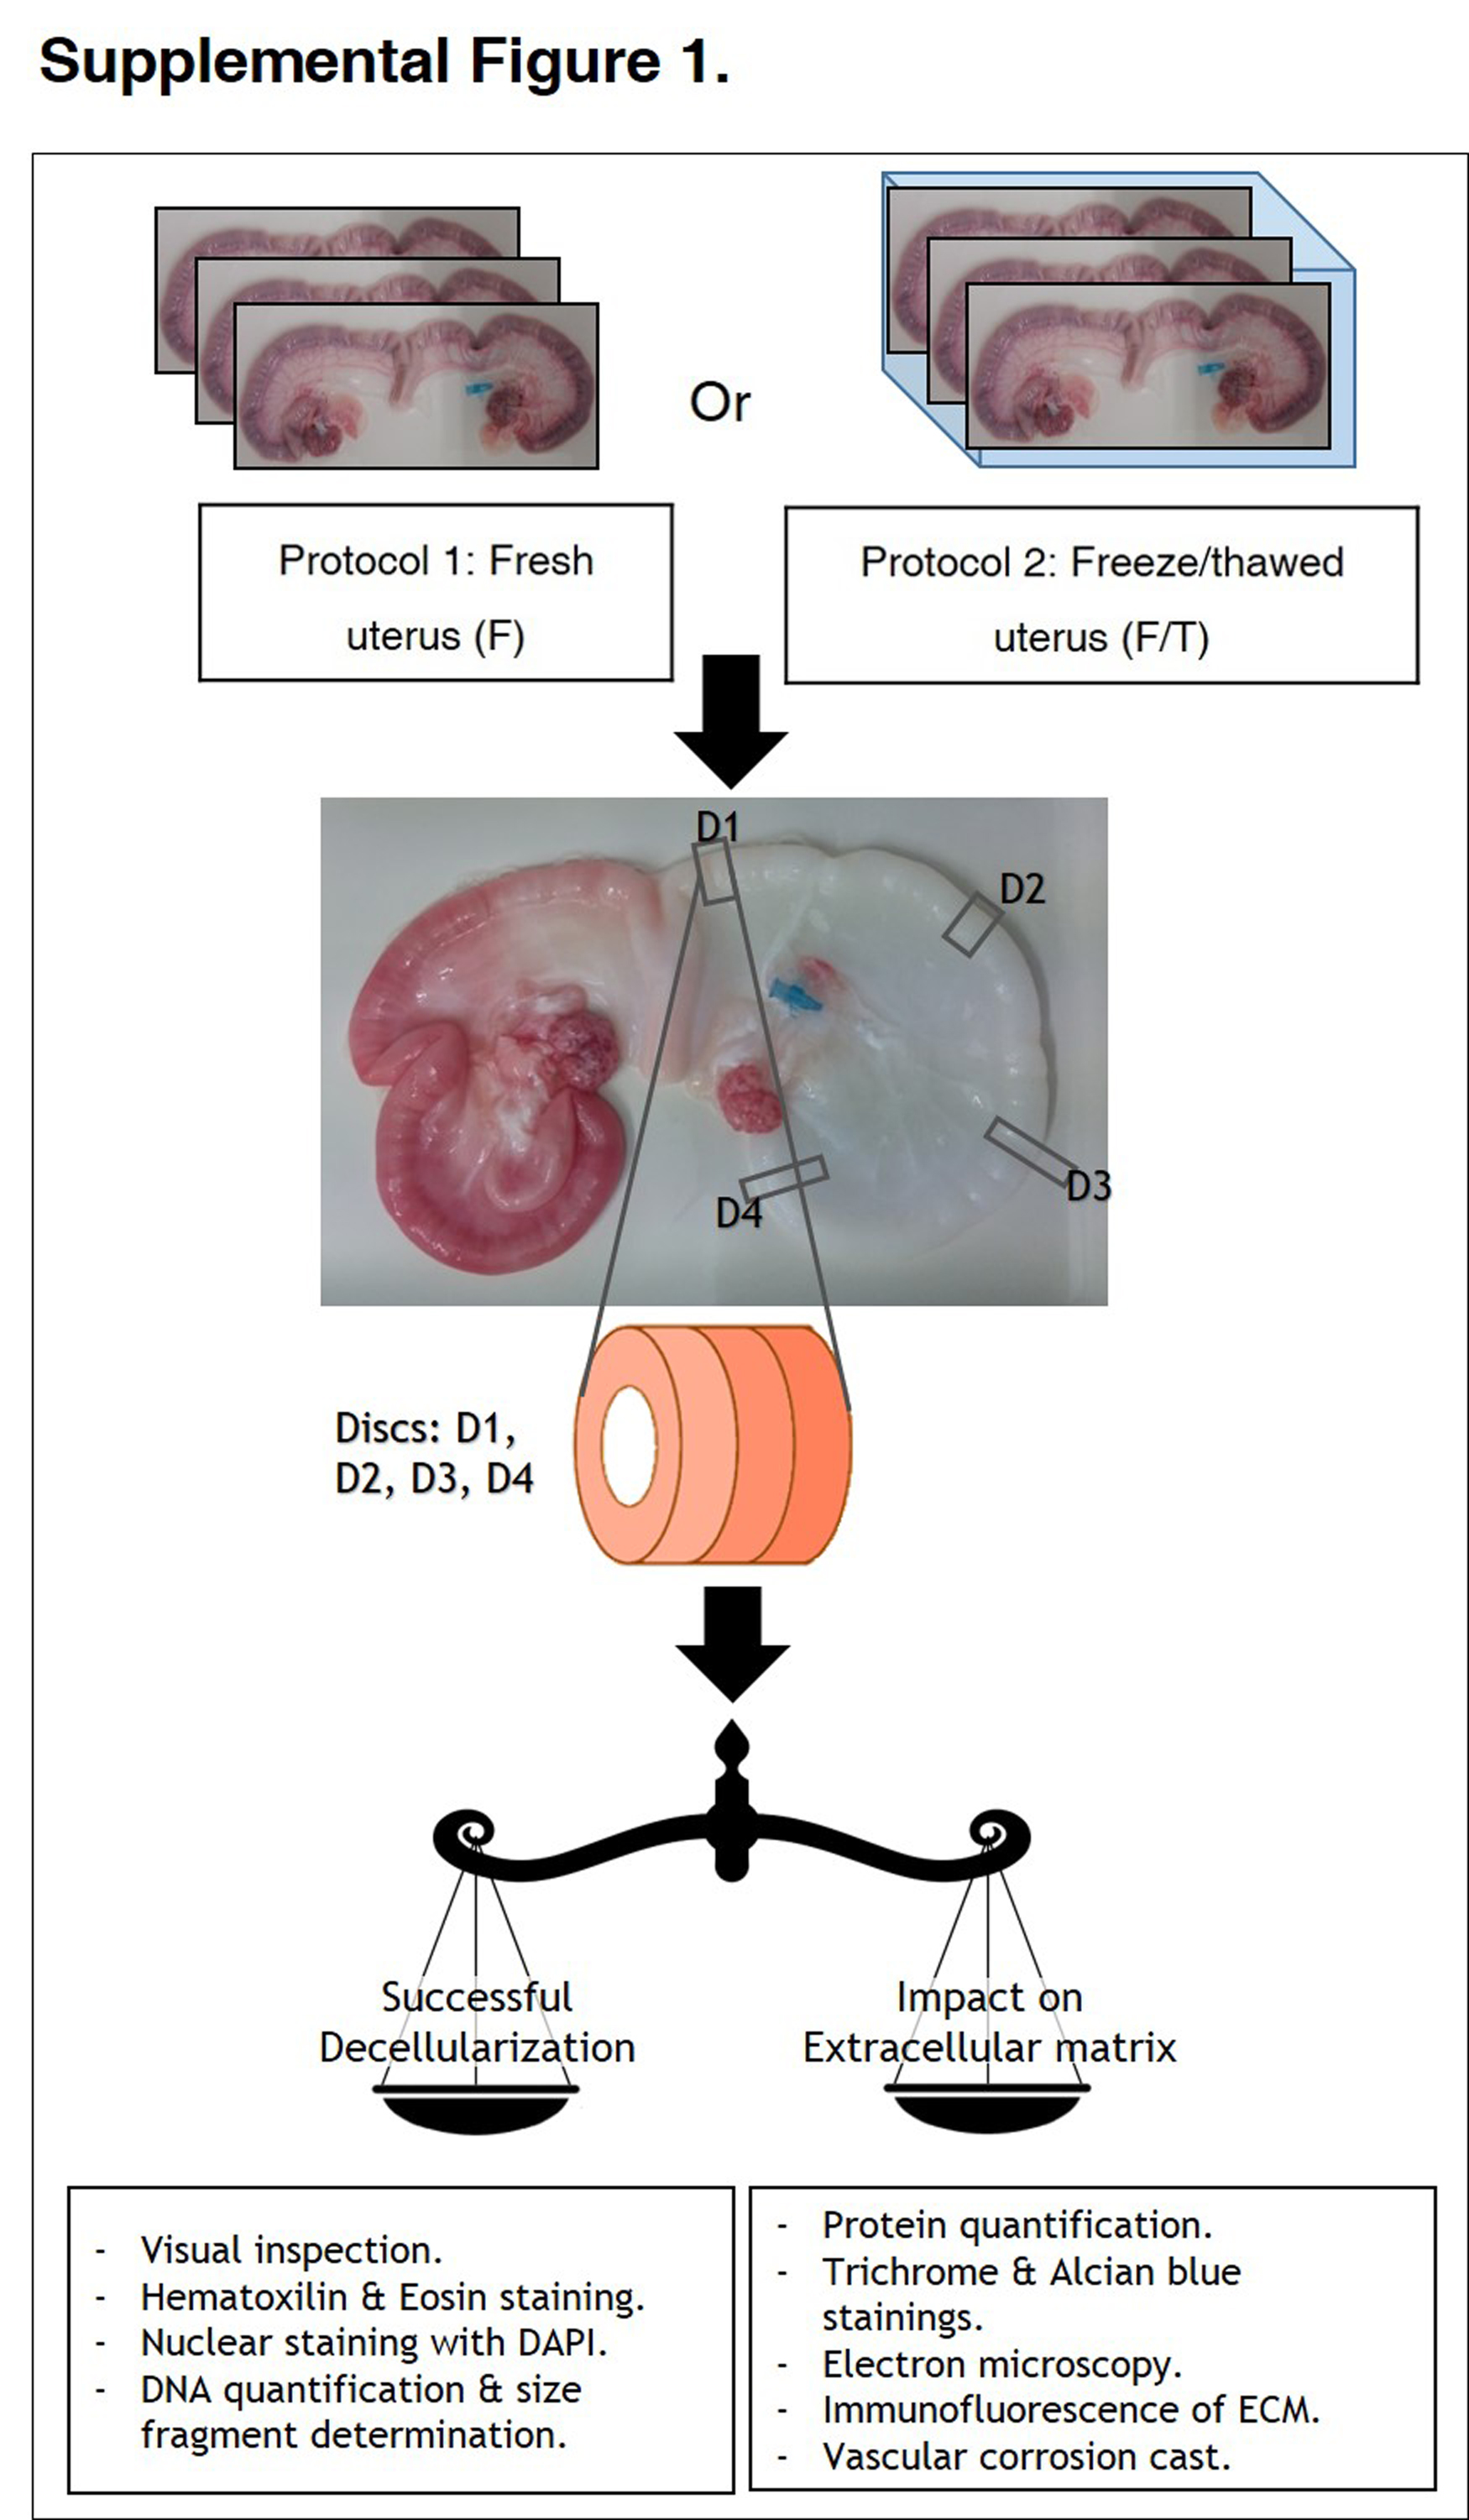 De And Recellularization Of The Pig Uterus A Bioengineering Pilot Mercedes Benz 190e Wiring Diagram Filetype Pdf These Segments Decellularized Samples Fresh Control Were Fixed For 24 Hours In 4 Paraformaldehyde Pfa At 4c Histological Staining